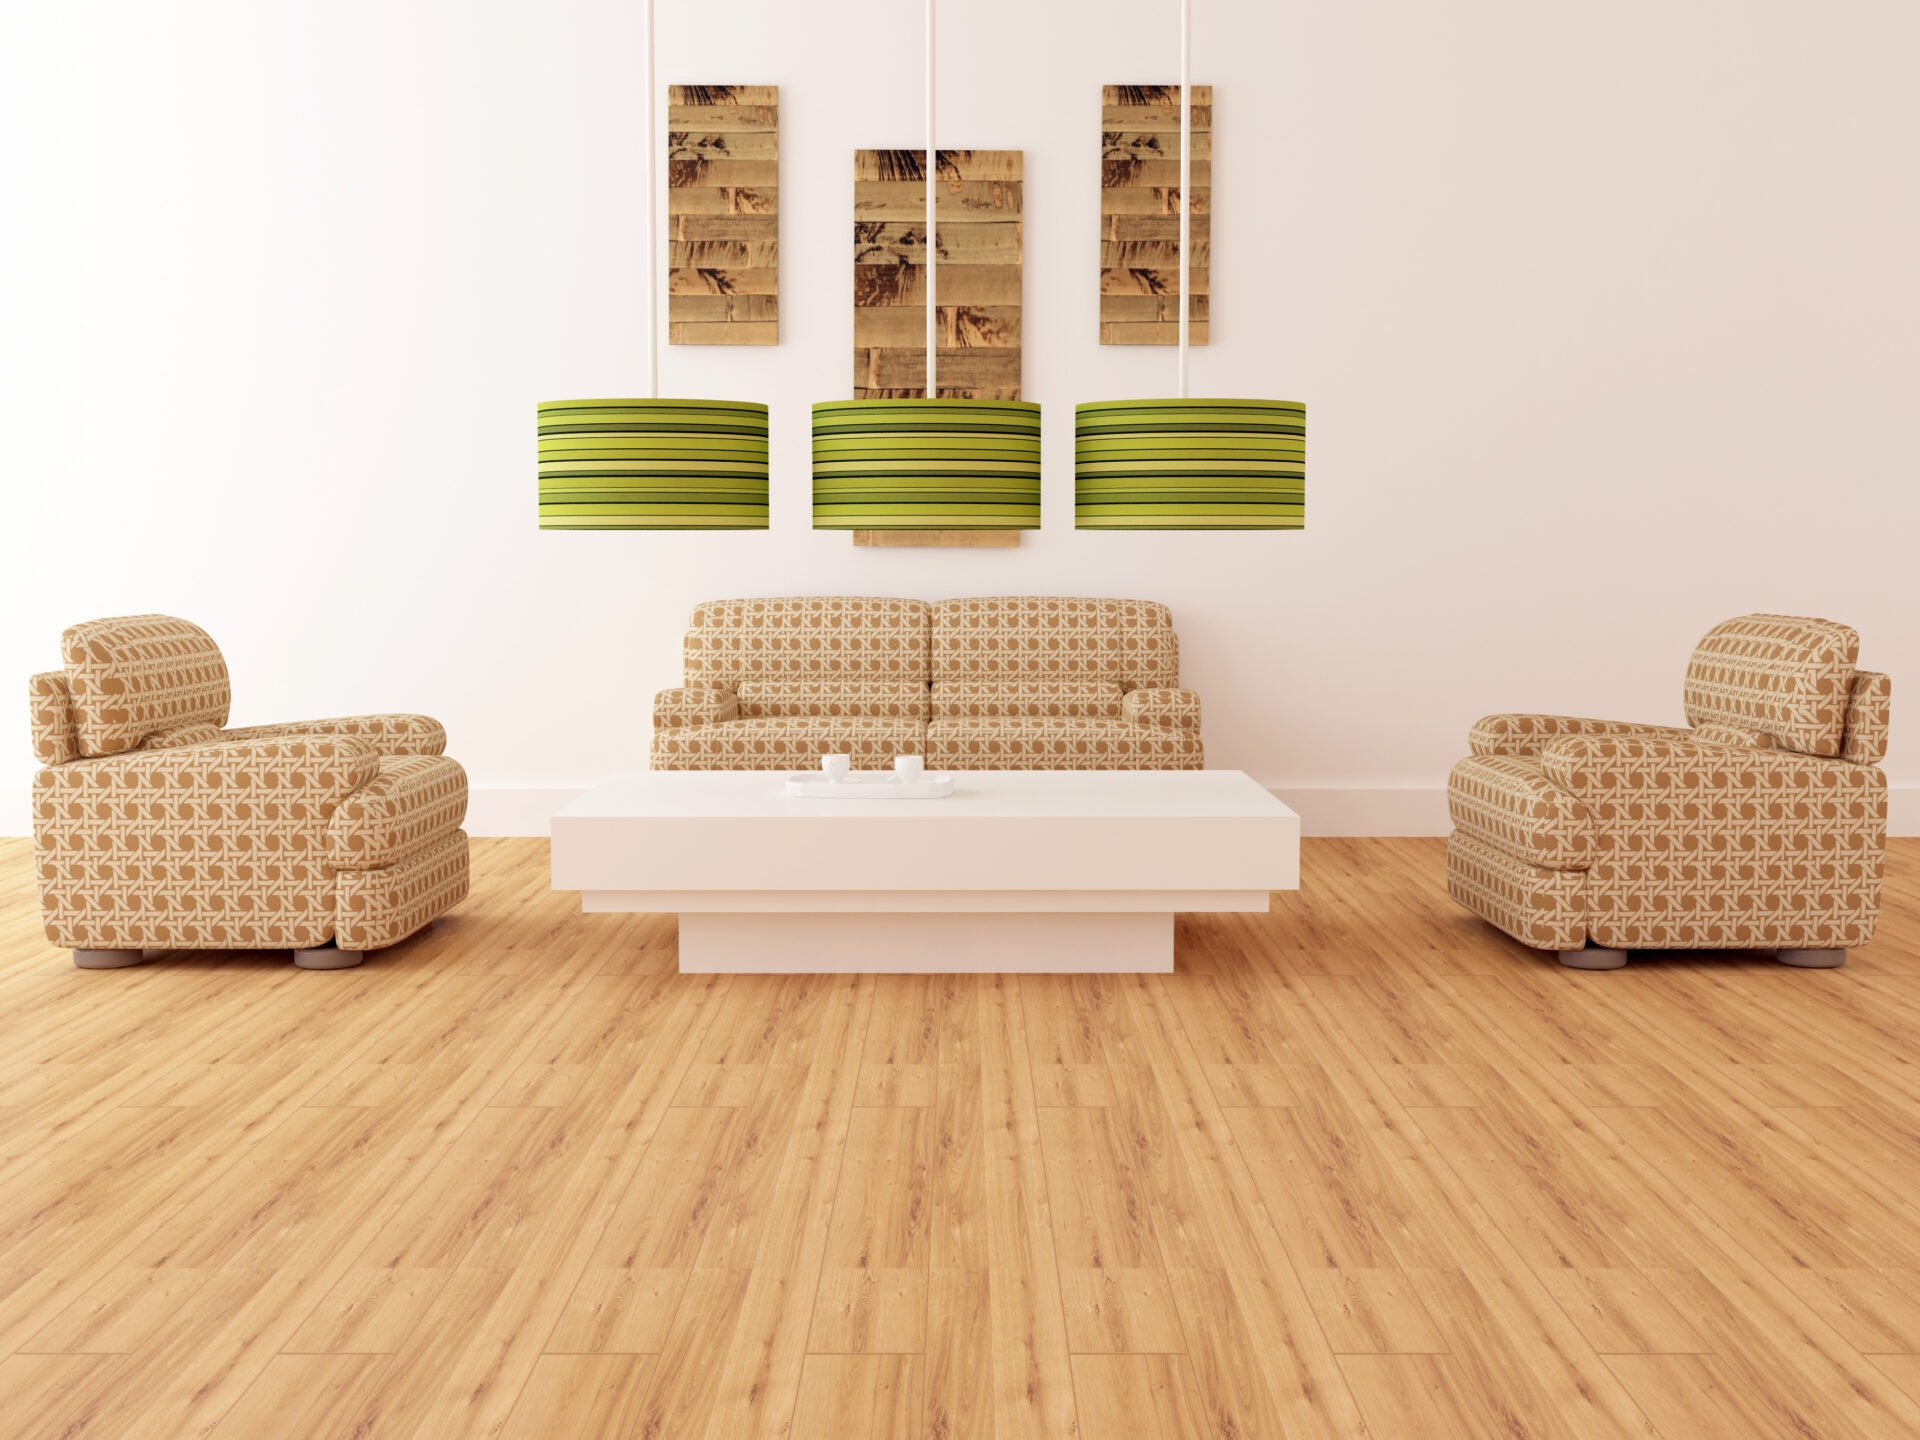 elegant modern living room, brown armchairs with lamps, coffee table & bamboo flooring